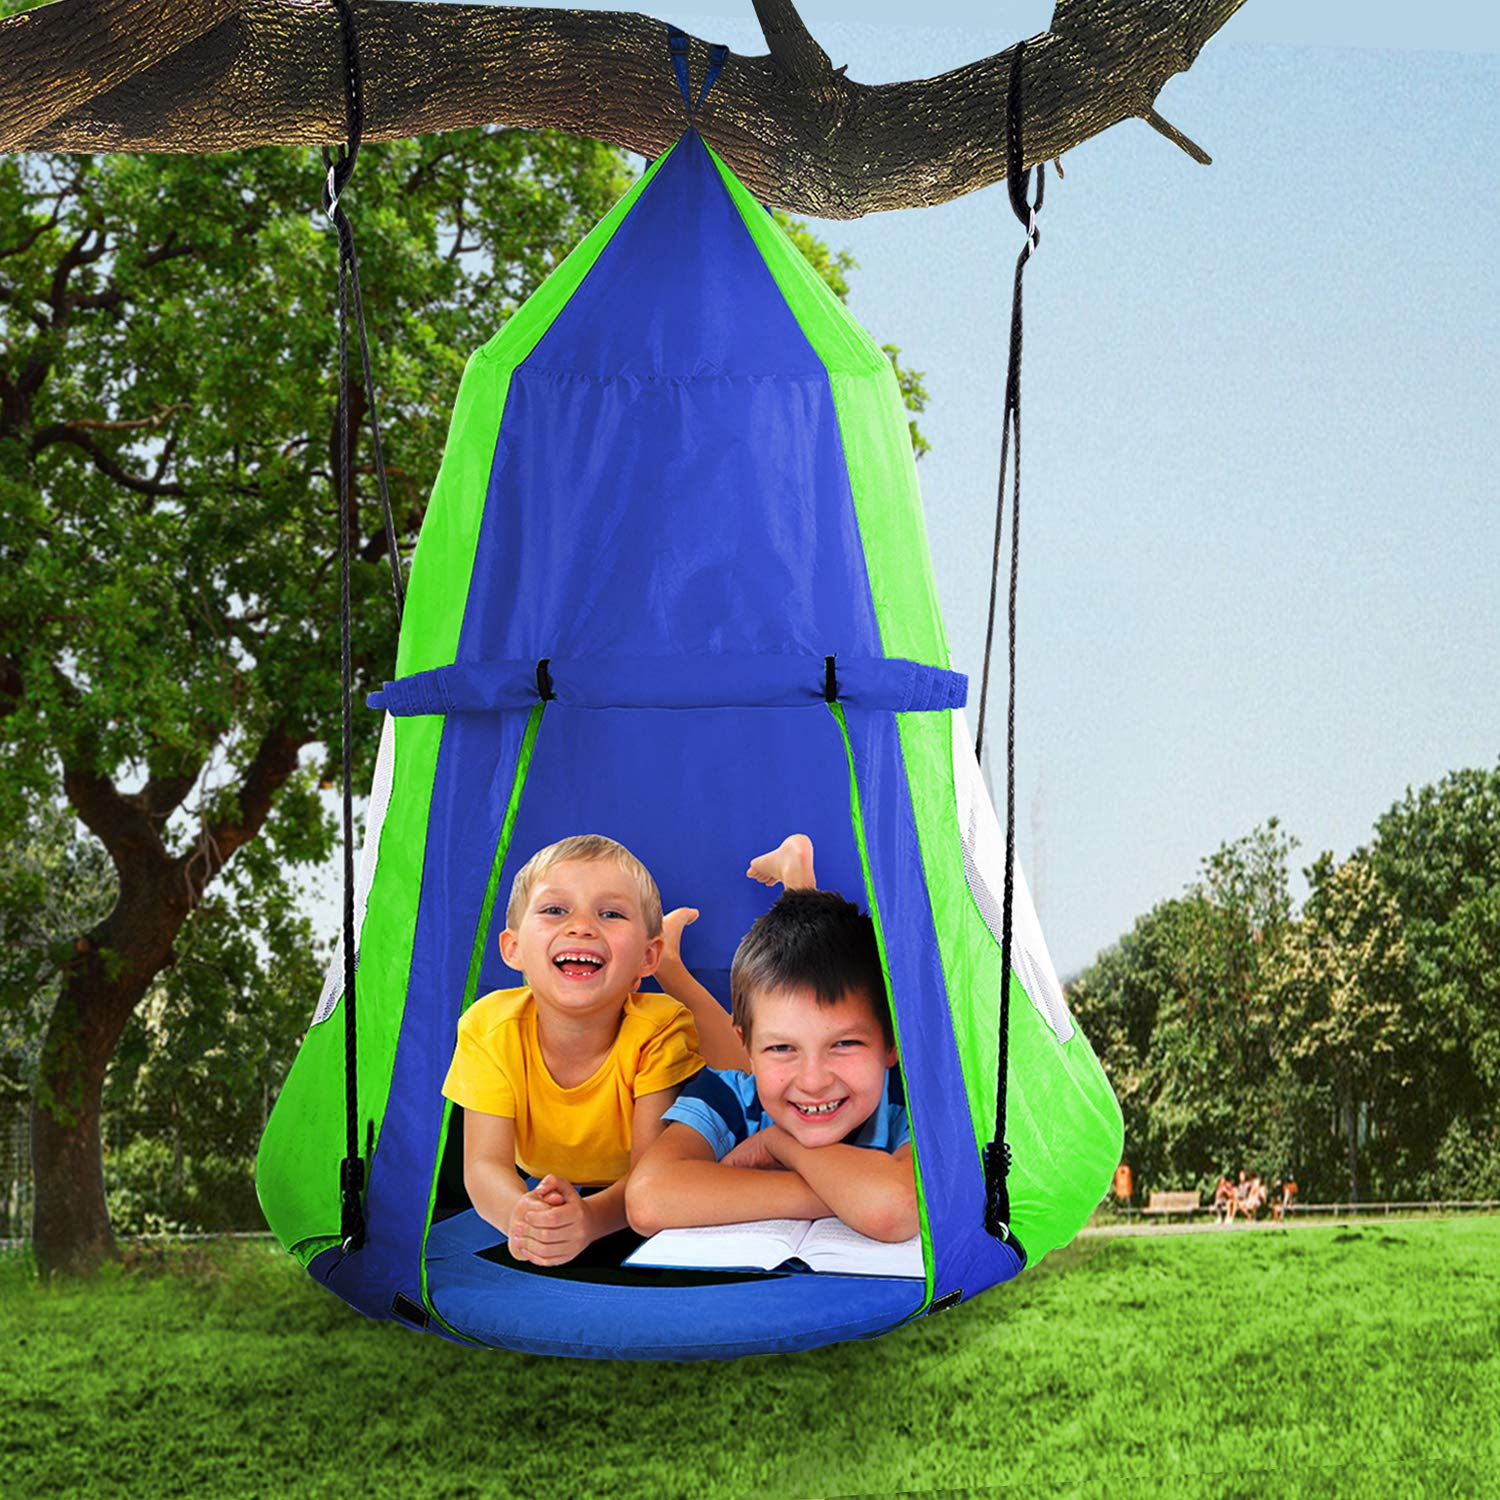 Hanging Tree Swing Tent Waterproof Kids Backyard Hammock Chair Max Capacity 600lbs Detachable Play Tent Swing Play House Castle Nest Pod Indoor Outdoor Bedroom Ceiling Hanging Tent Camping Tree House by Reliancer